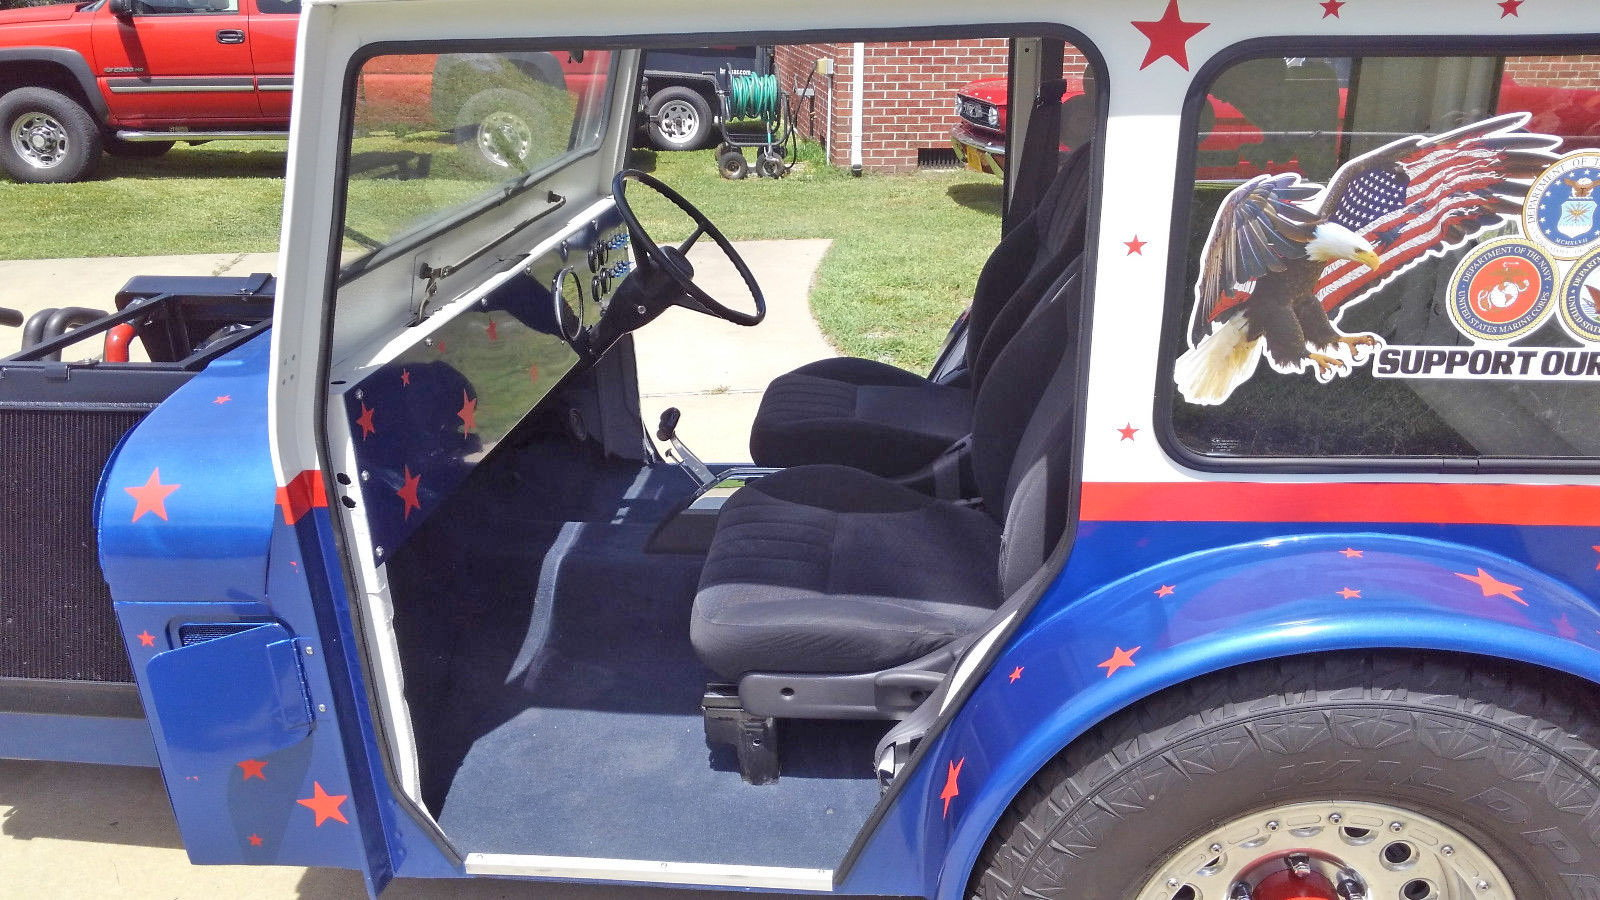 There is a Red White and Blue Postal Jeep with Two Motors